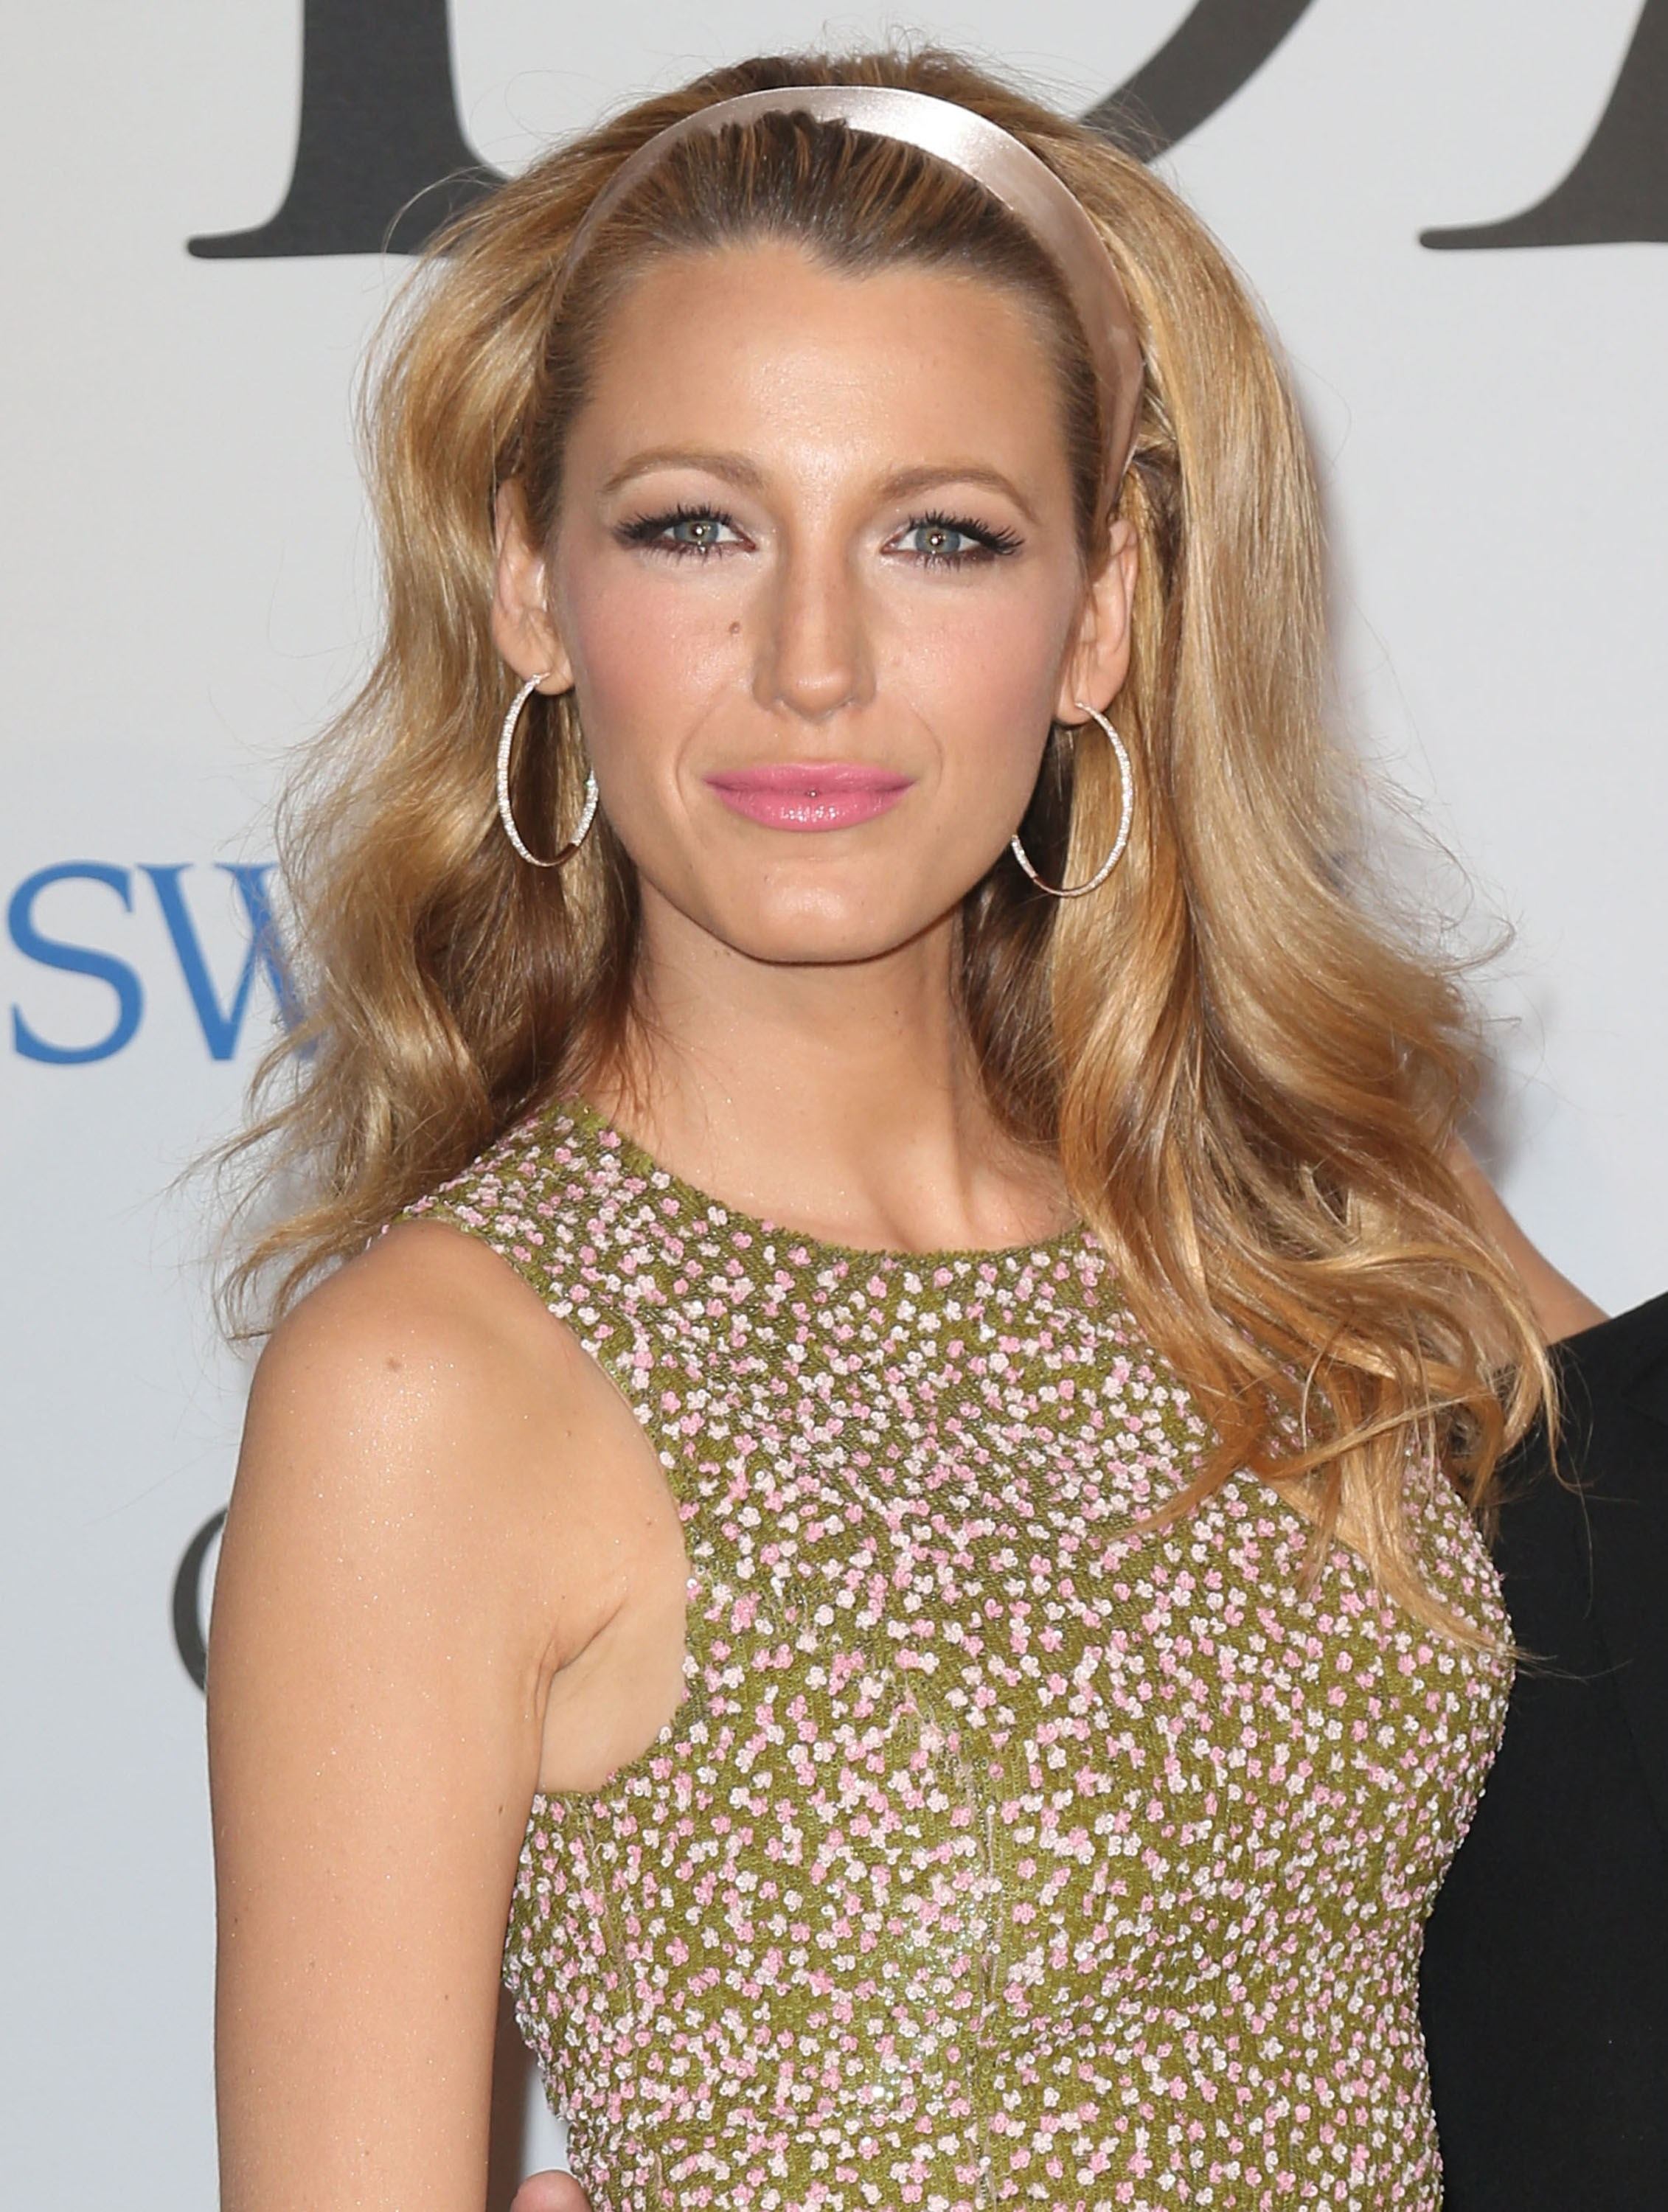 Blake Lively | Known p...